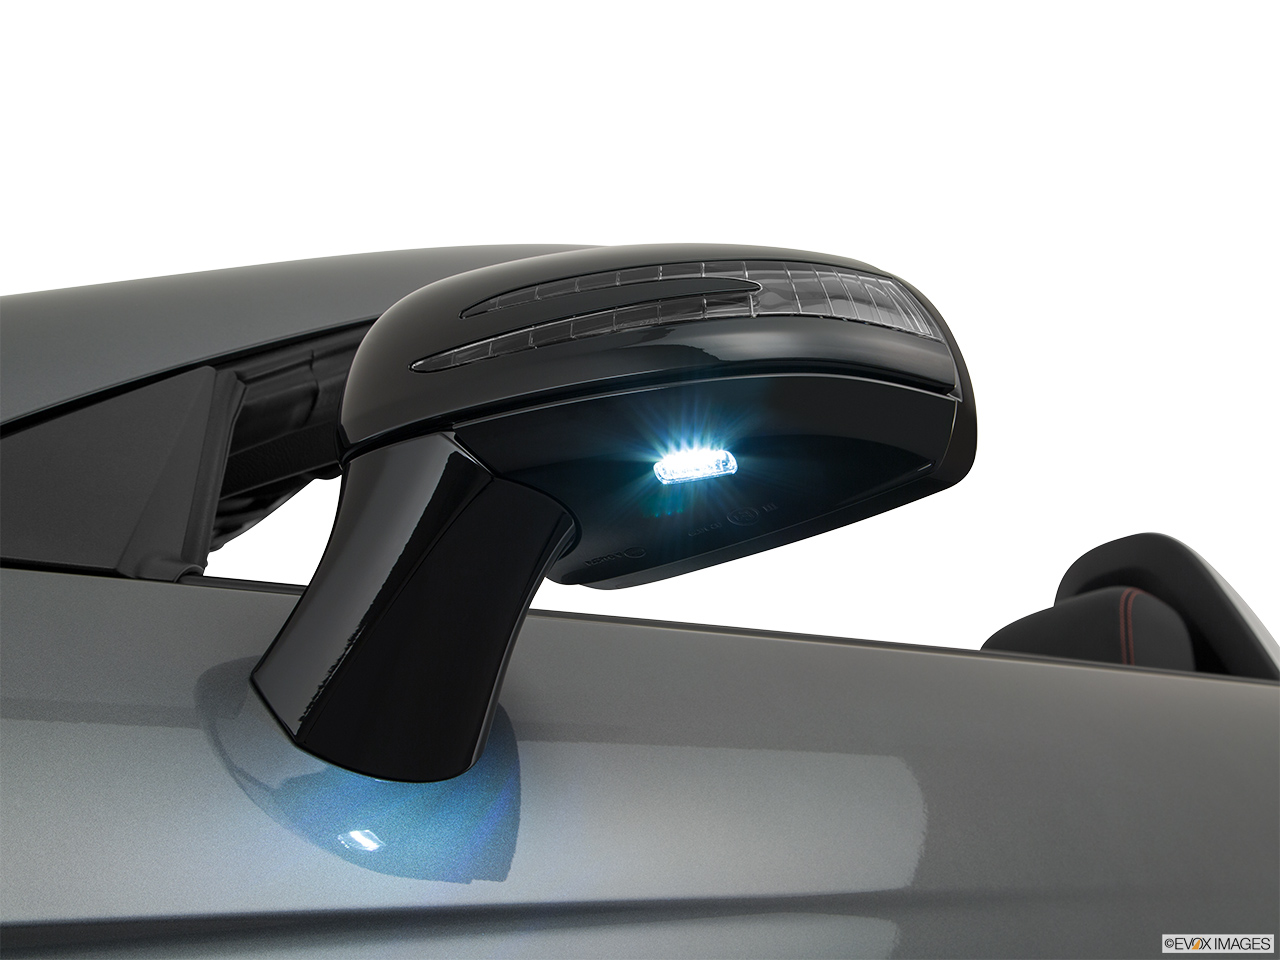 2019 Mercedes-Benz SLC-class SLC43 AMG Driver's side puddle lamp, illuminated